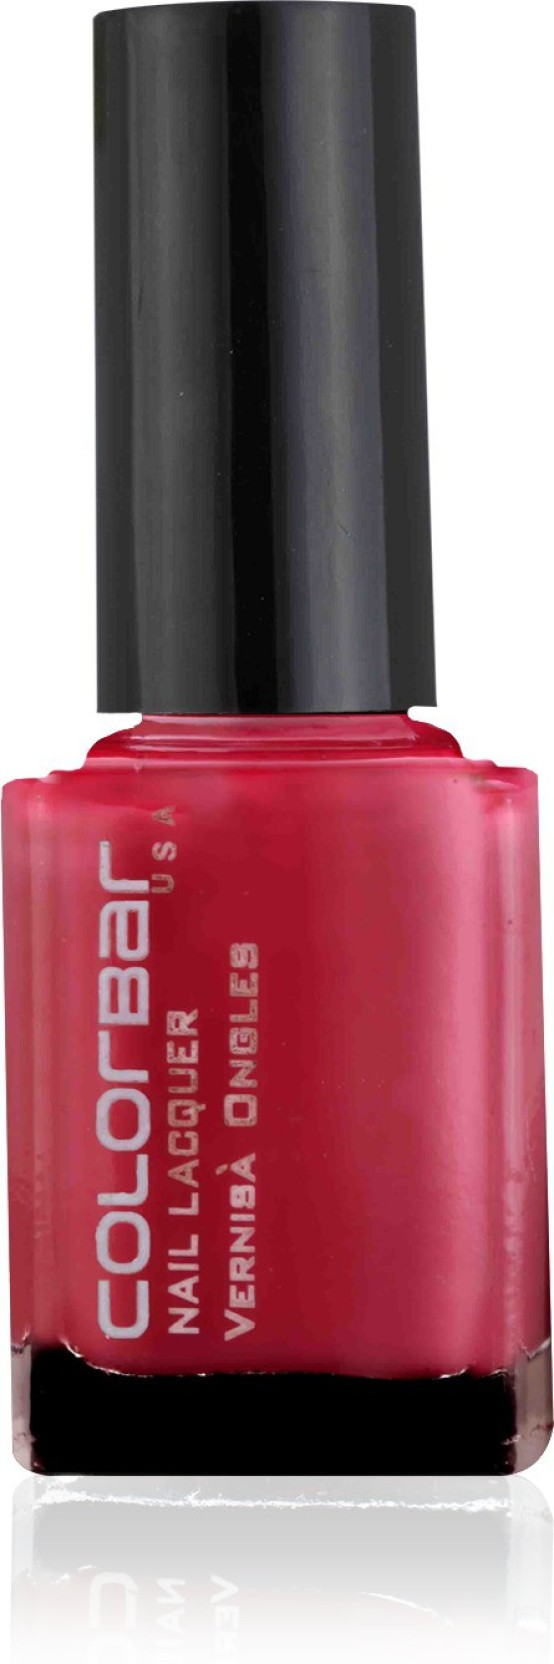 Colorbar Nail Lacquer Vernis A Ongles Valentino (02) - Price in ...